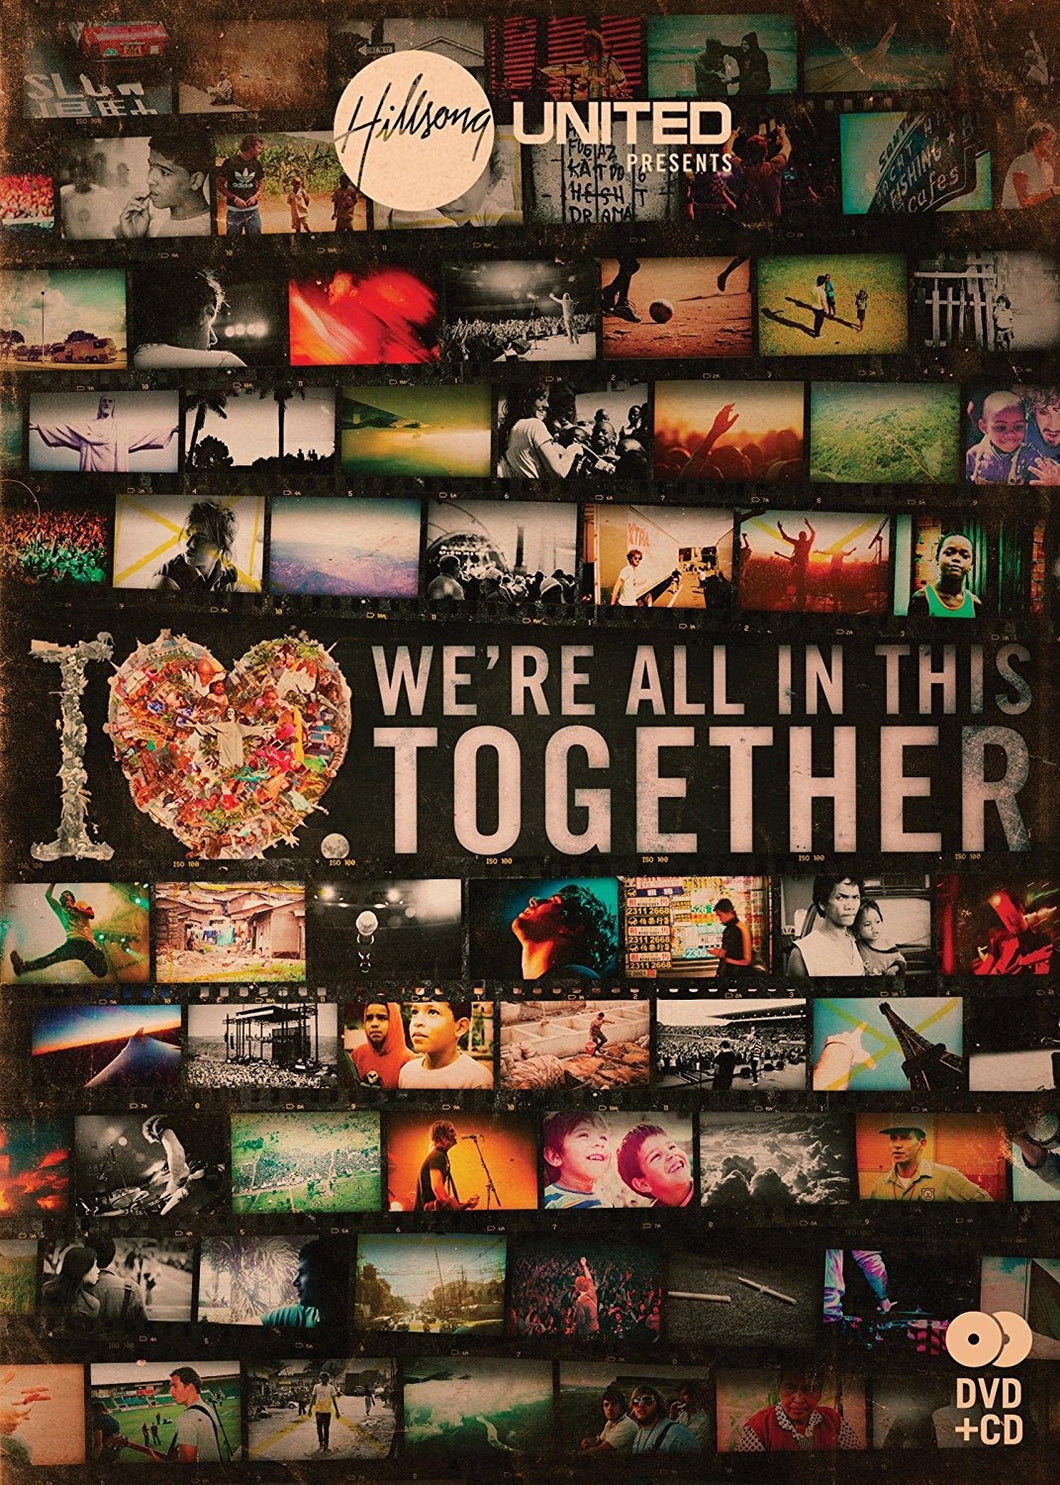 Hillsong We're All In This Together CD/DVD